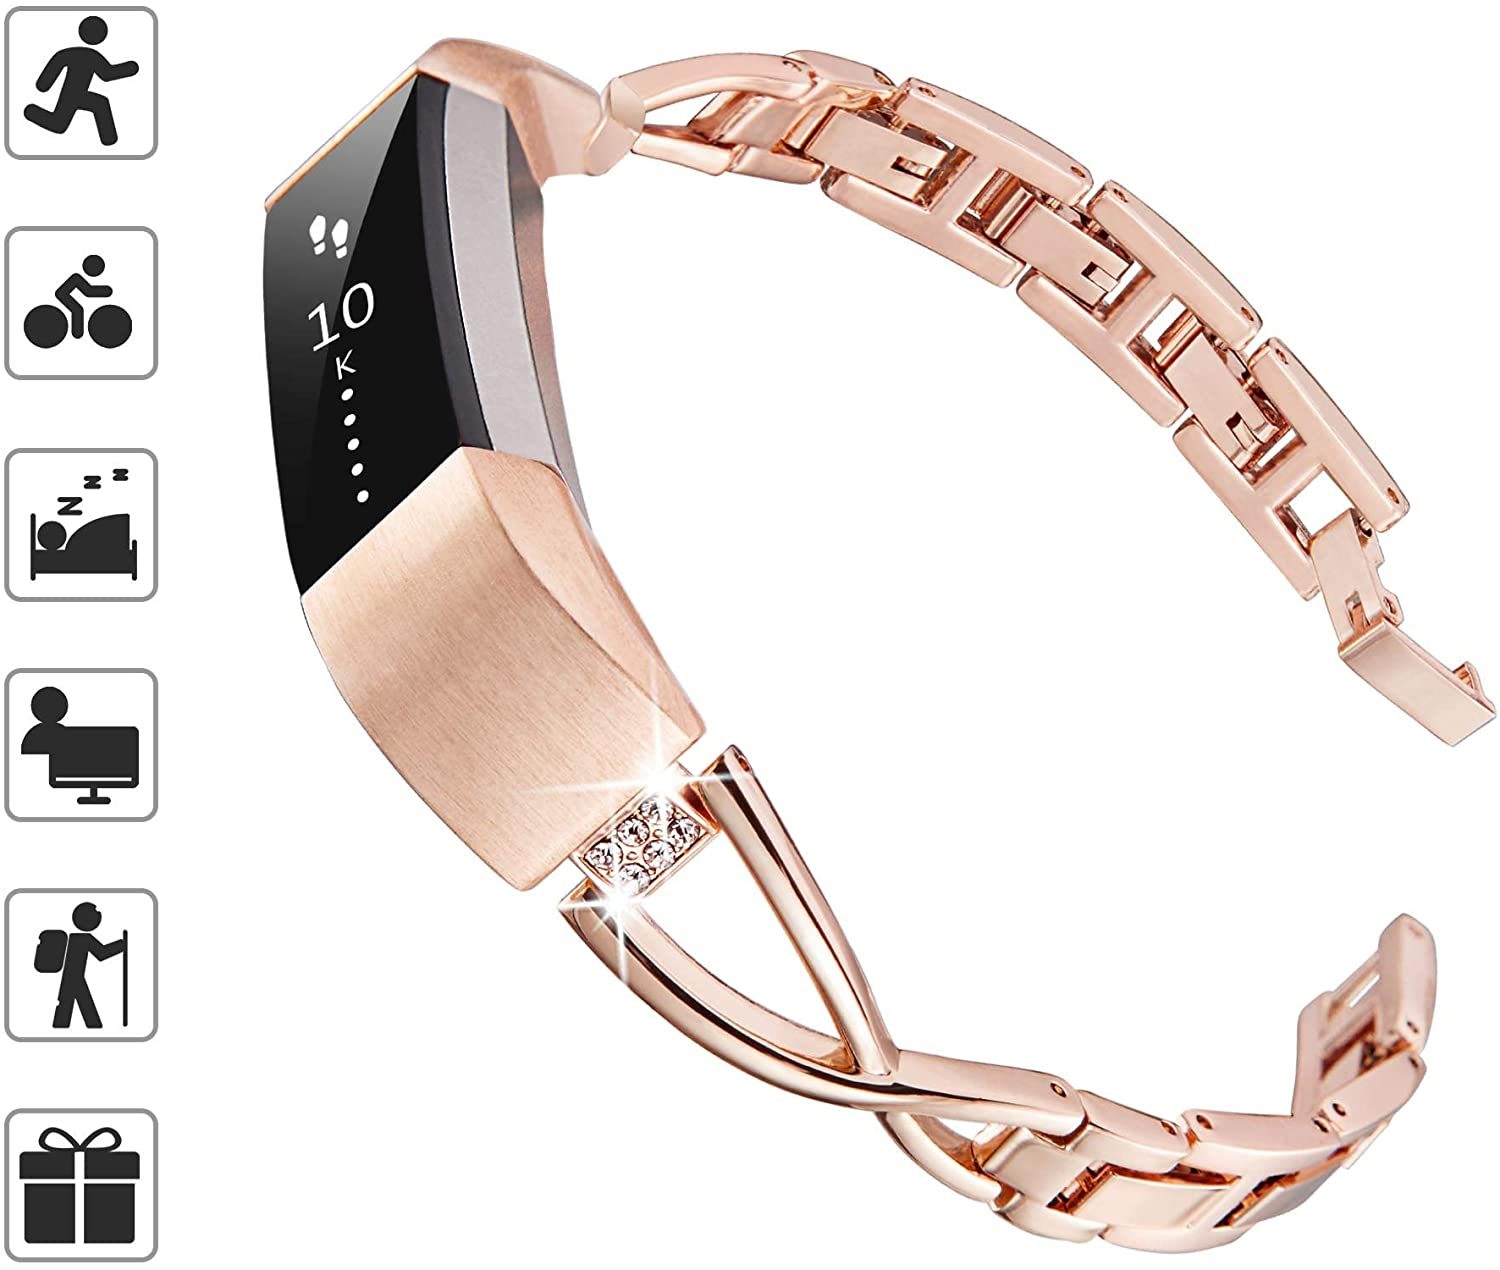 TOMALL Metal Bands Compatible for Fitbit Alta and Alta HR,Stainless Steel Metal Replacement Wristband for Women Men (Rose Gold, Small)